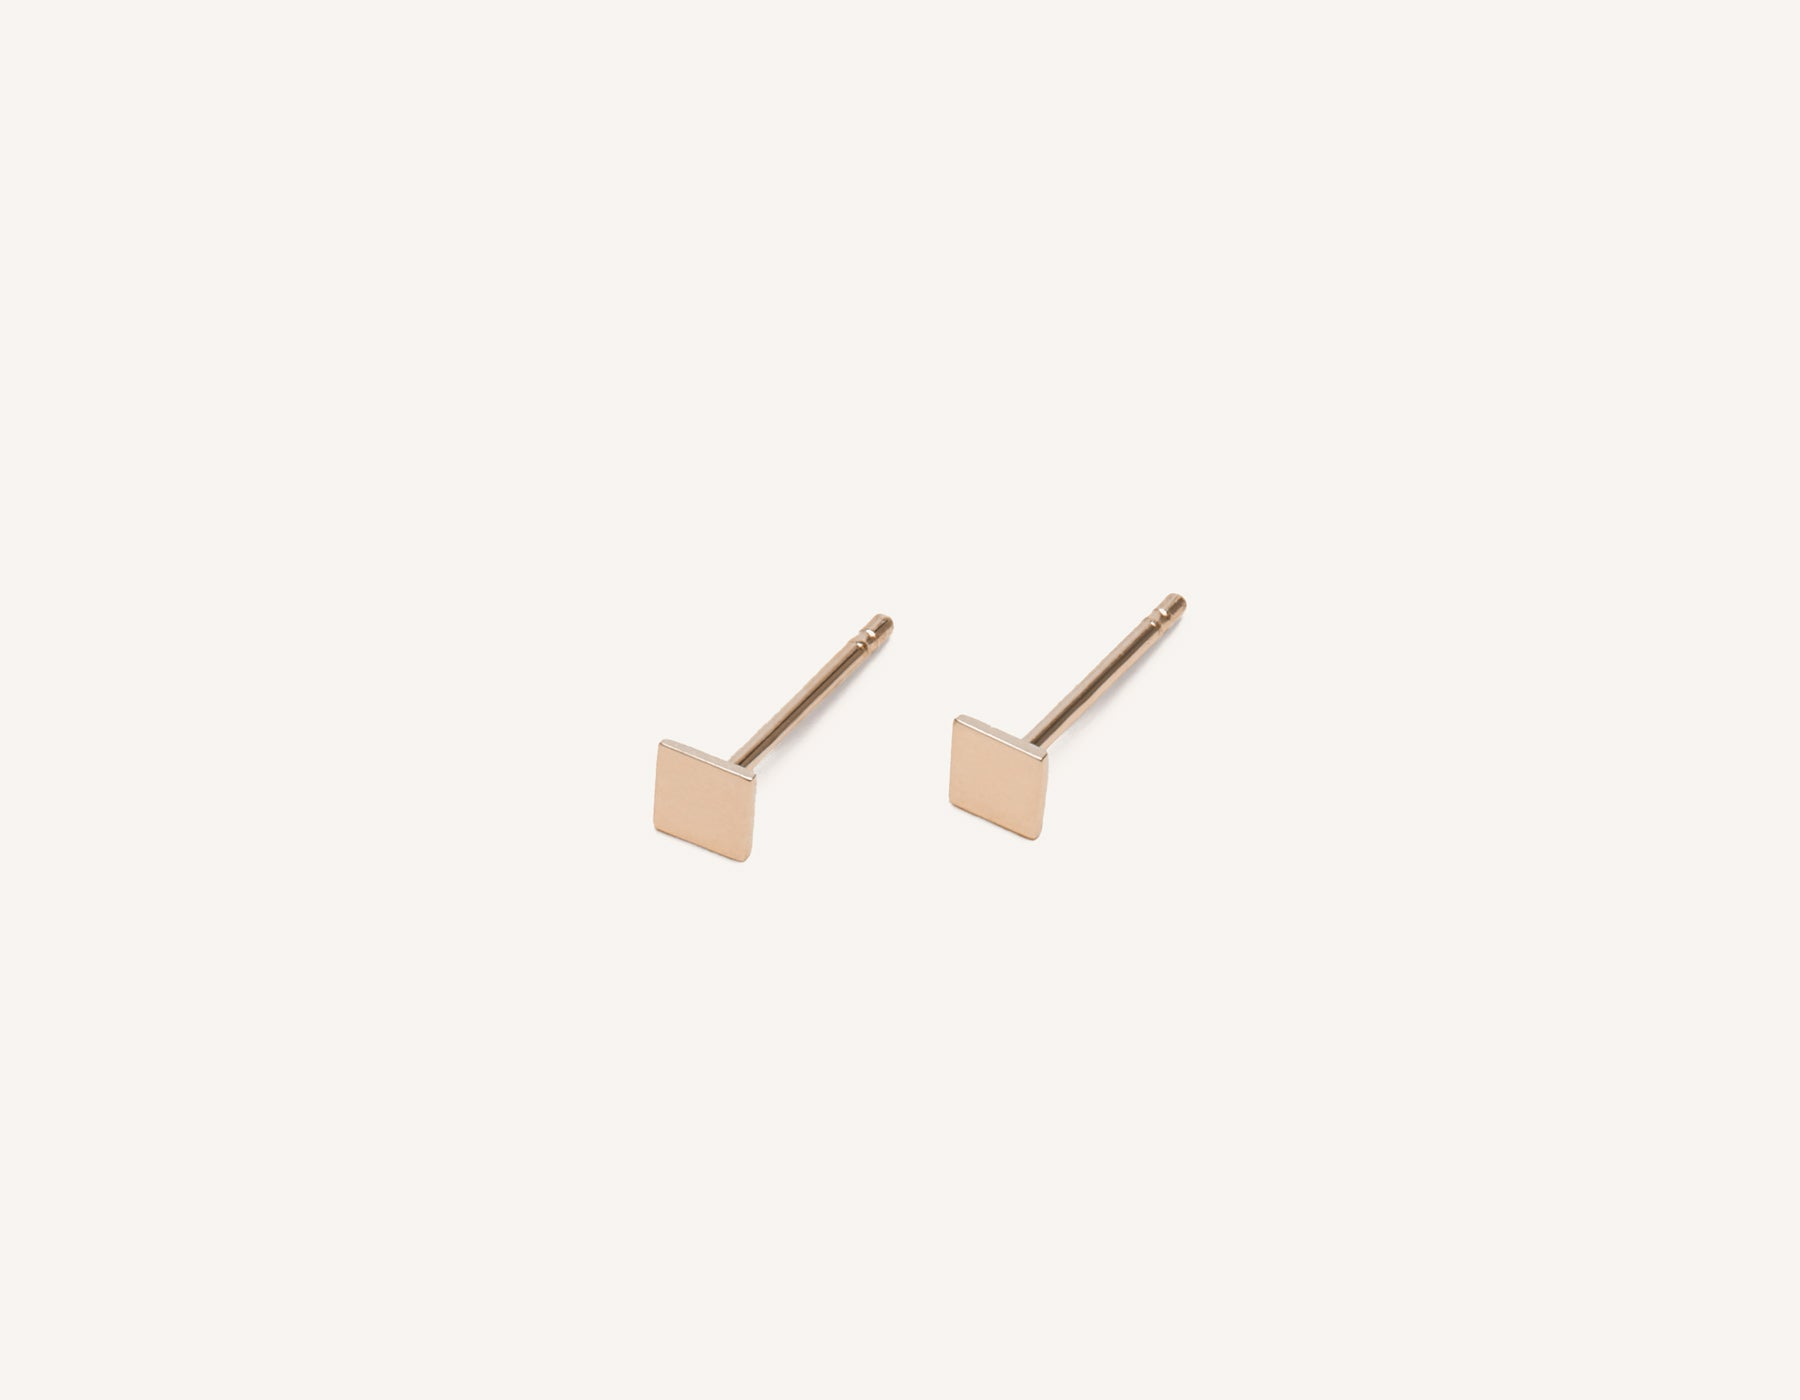 Simple classic Square Stud earrings 14k solid gold Vrai & Oro minimalist jewelry, 14K Rose Gold